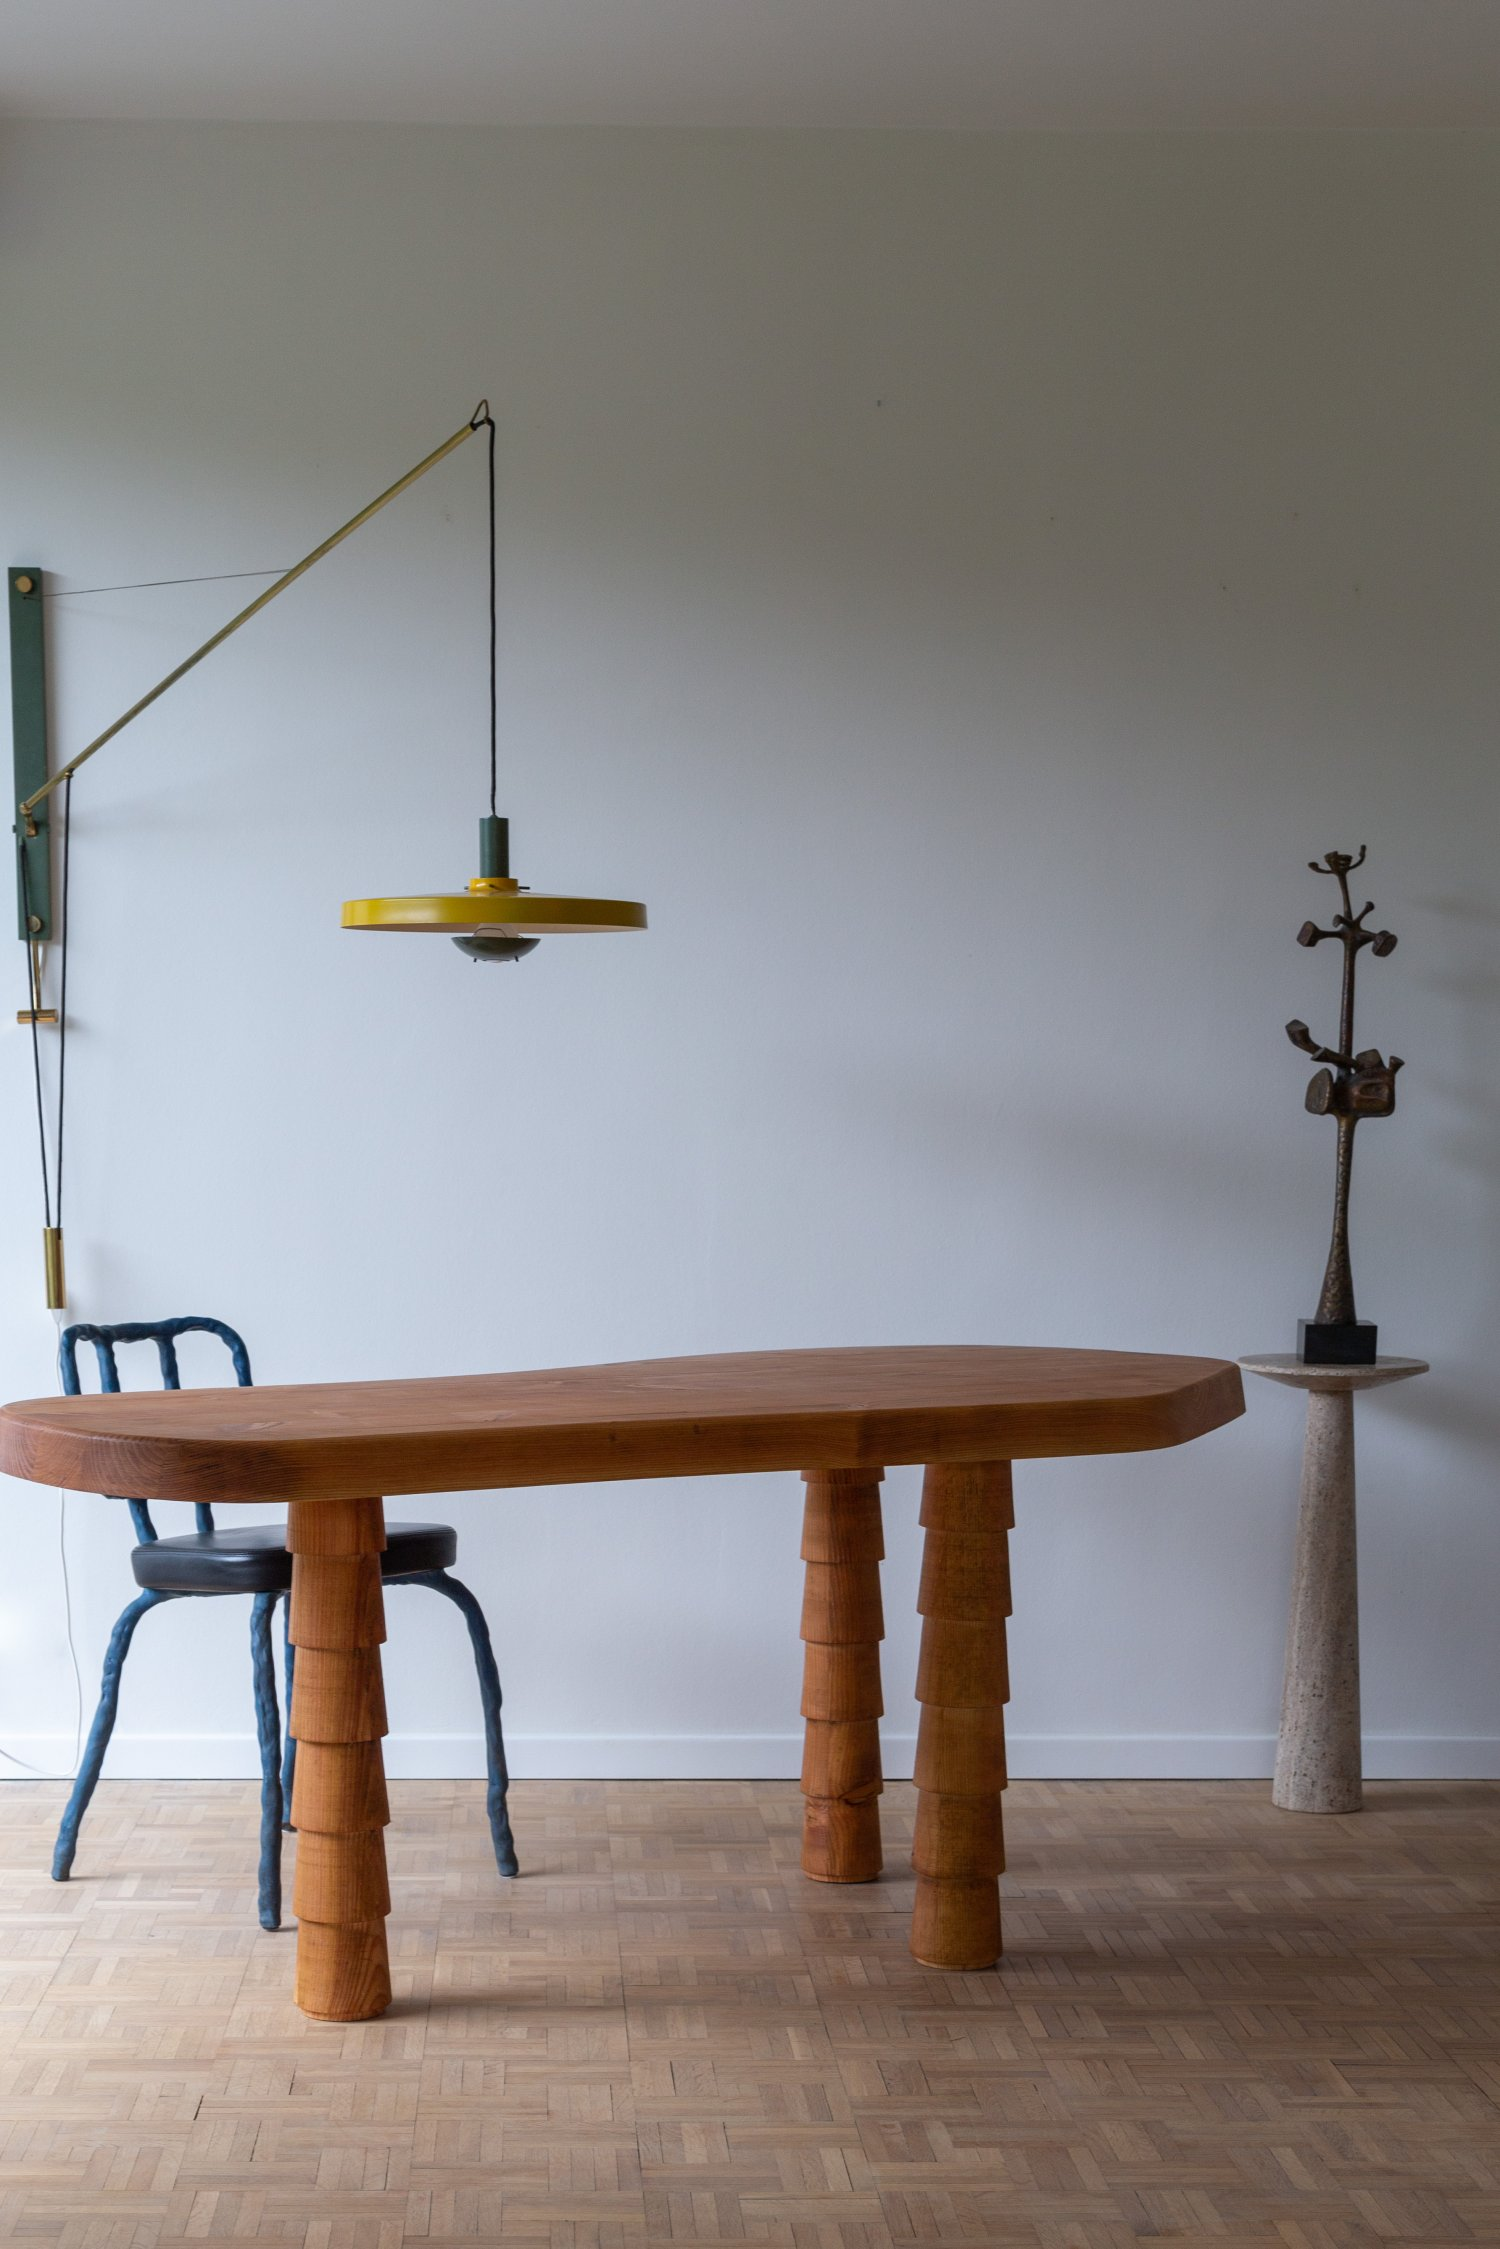 Table by Thomas Serruys